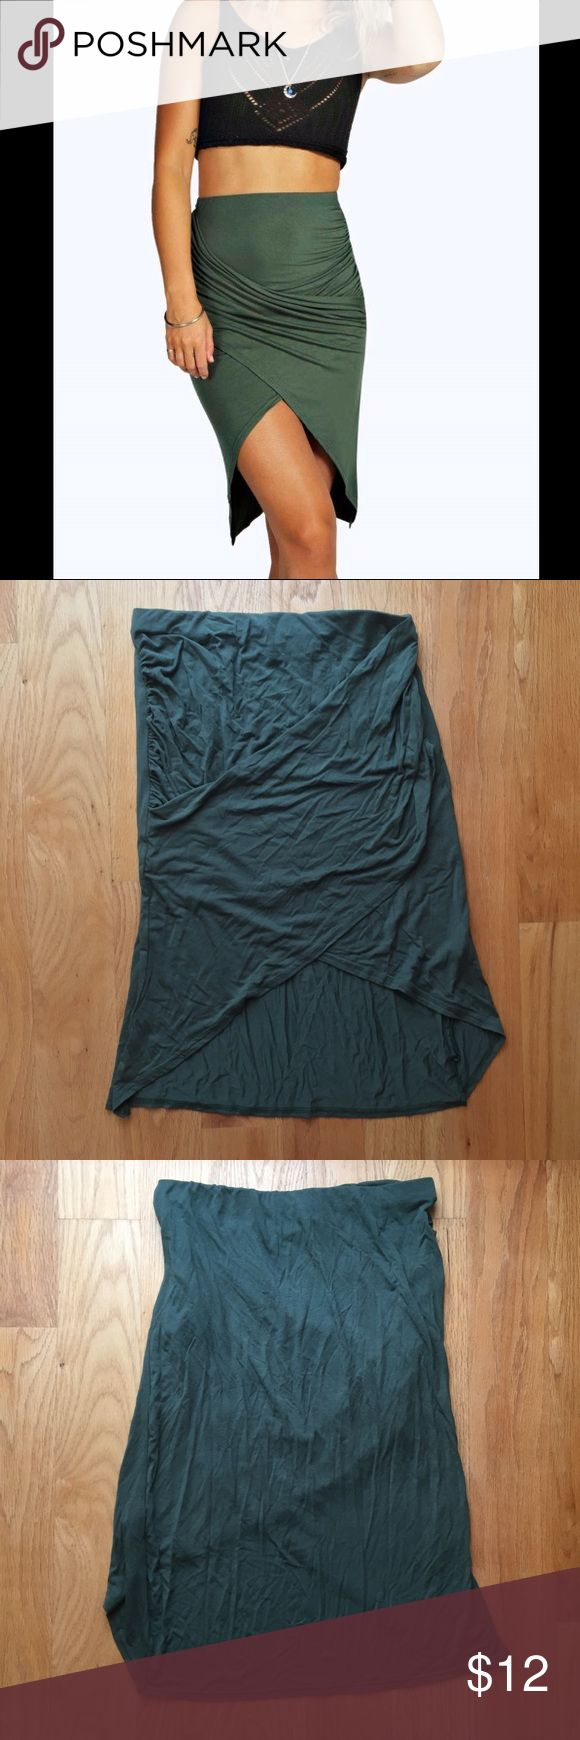 "Boohoo Green Drape Wrap Tulip Bodycon Midi Skirt Named the ""Delia Drape Asymmetric Hem Midi Skirt"" and the color is called ""khaki"" but is just a forest green color. Only worn once and in great condition. Feel free to make an offer! Boohoo Skirts Asymmetrical"